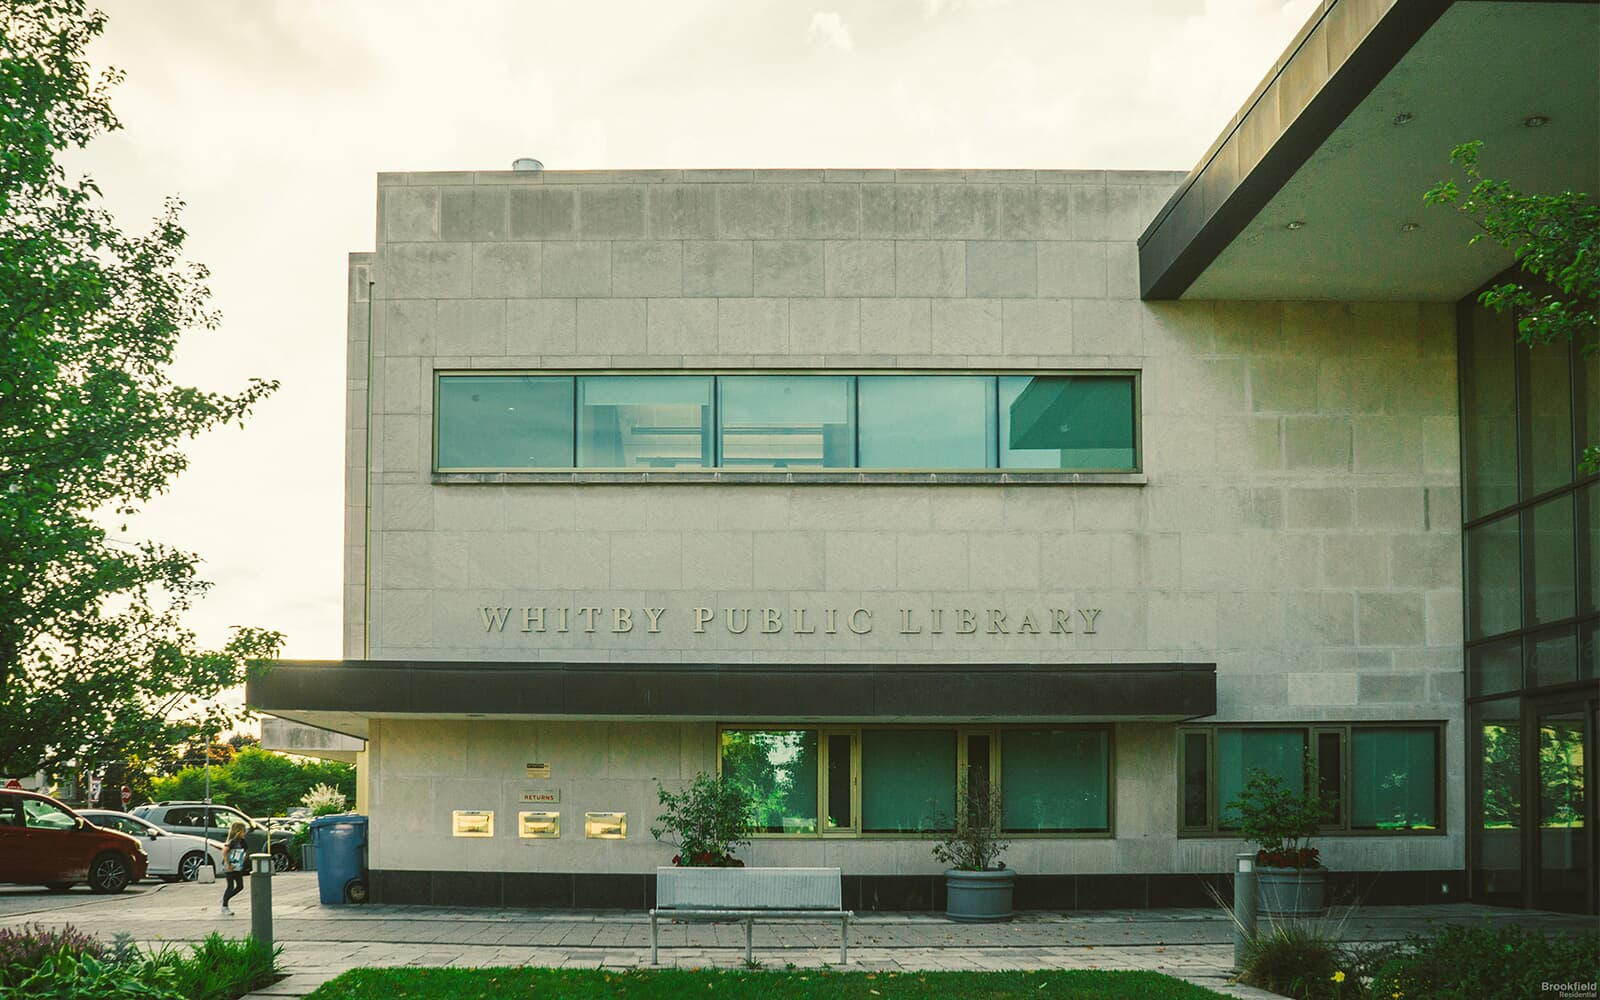 Exterior of Whitby Public Library in Whitby, ON